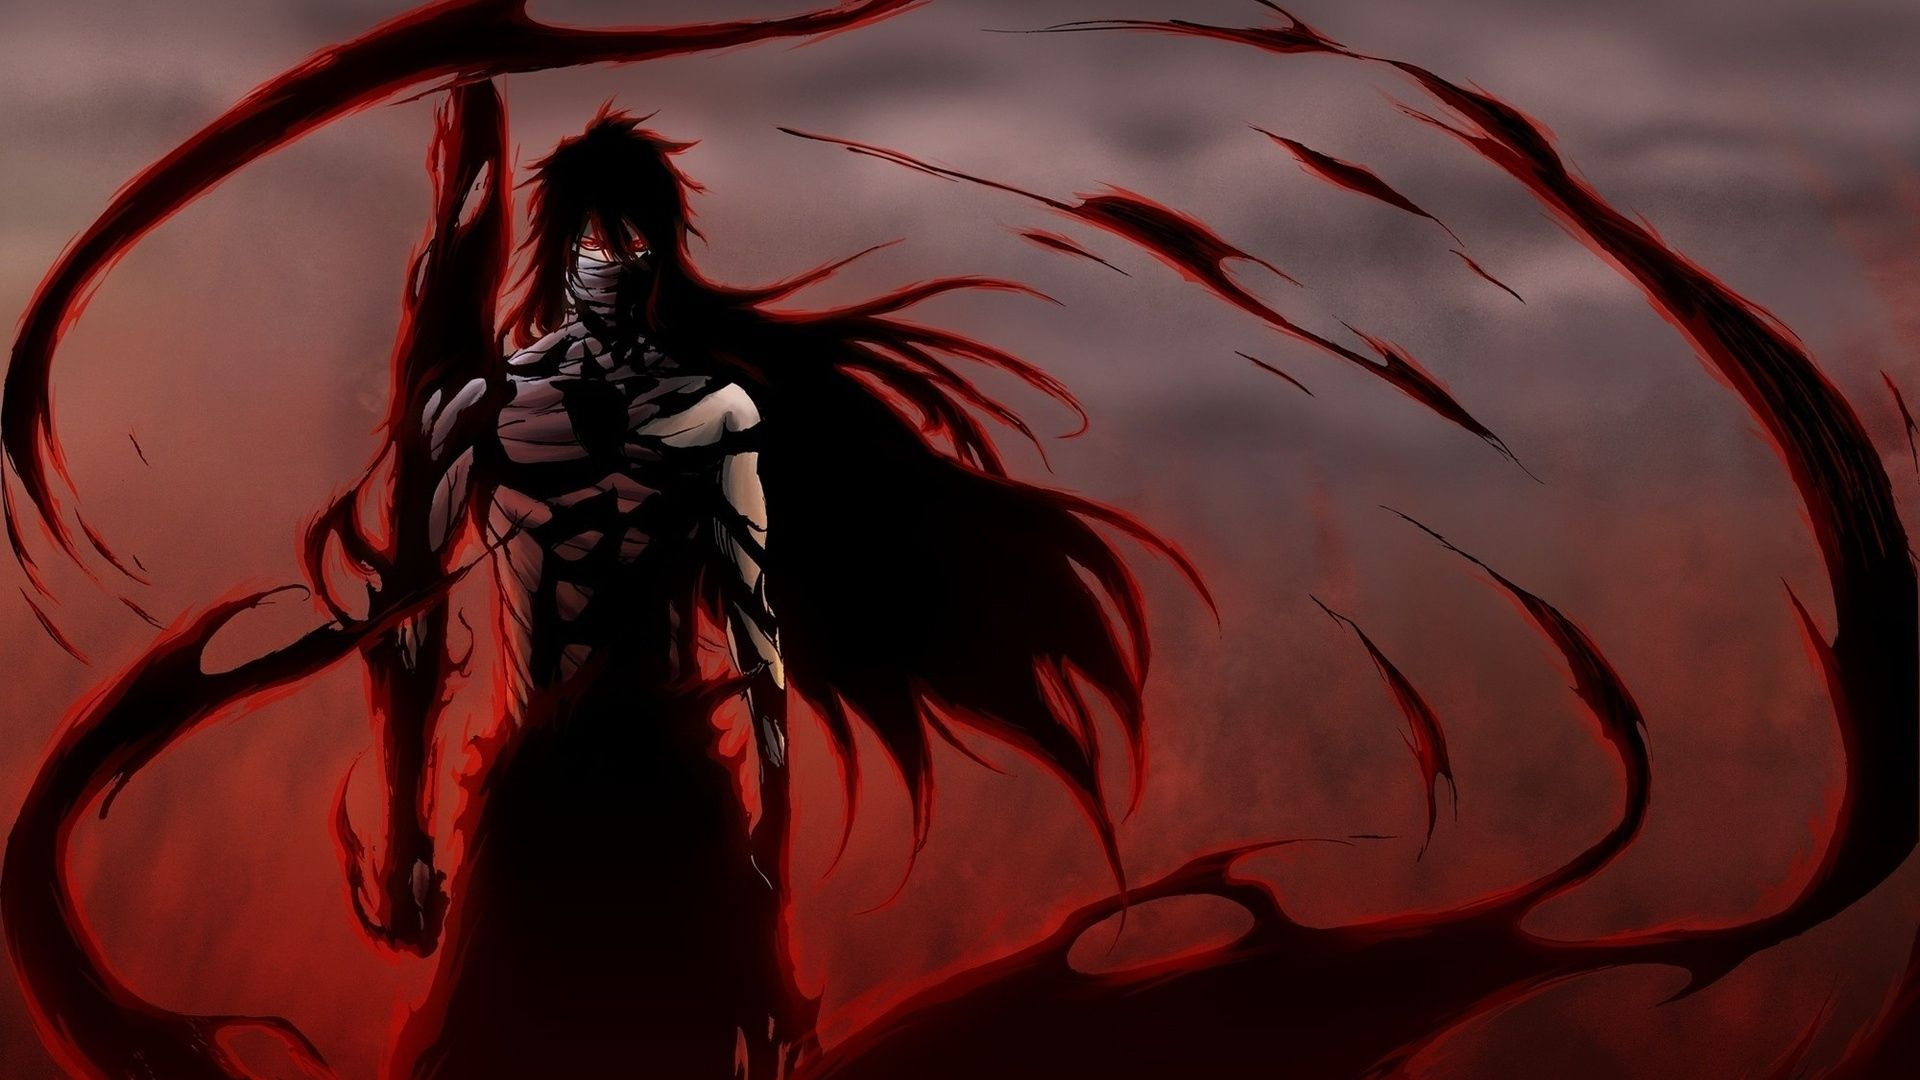 Download Wallpaper 1920x1080 Anime Bleach Ichego Posture Wind